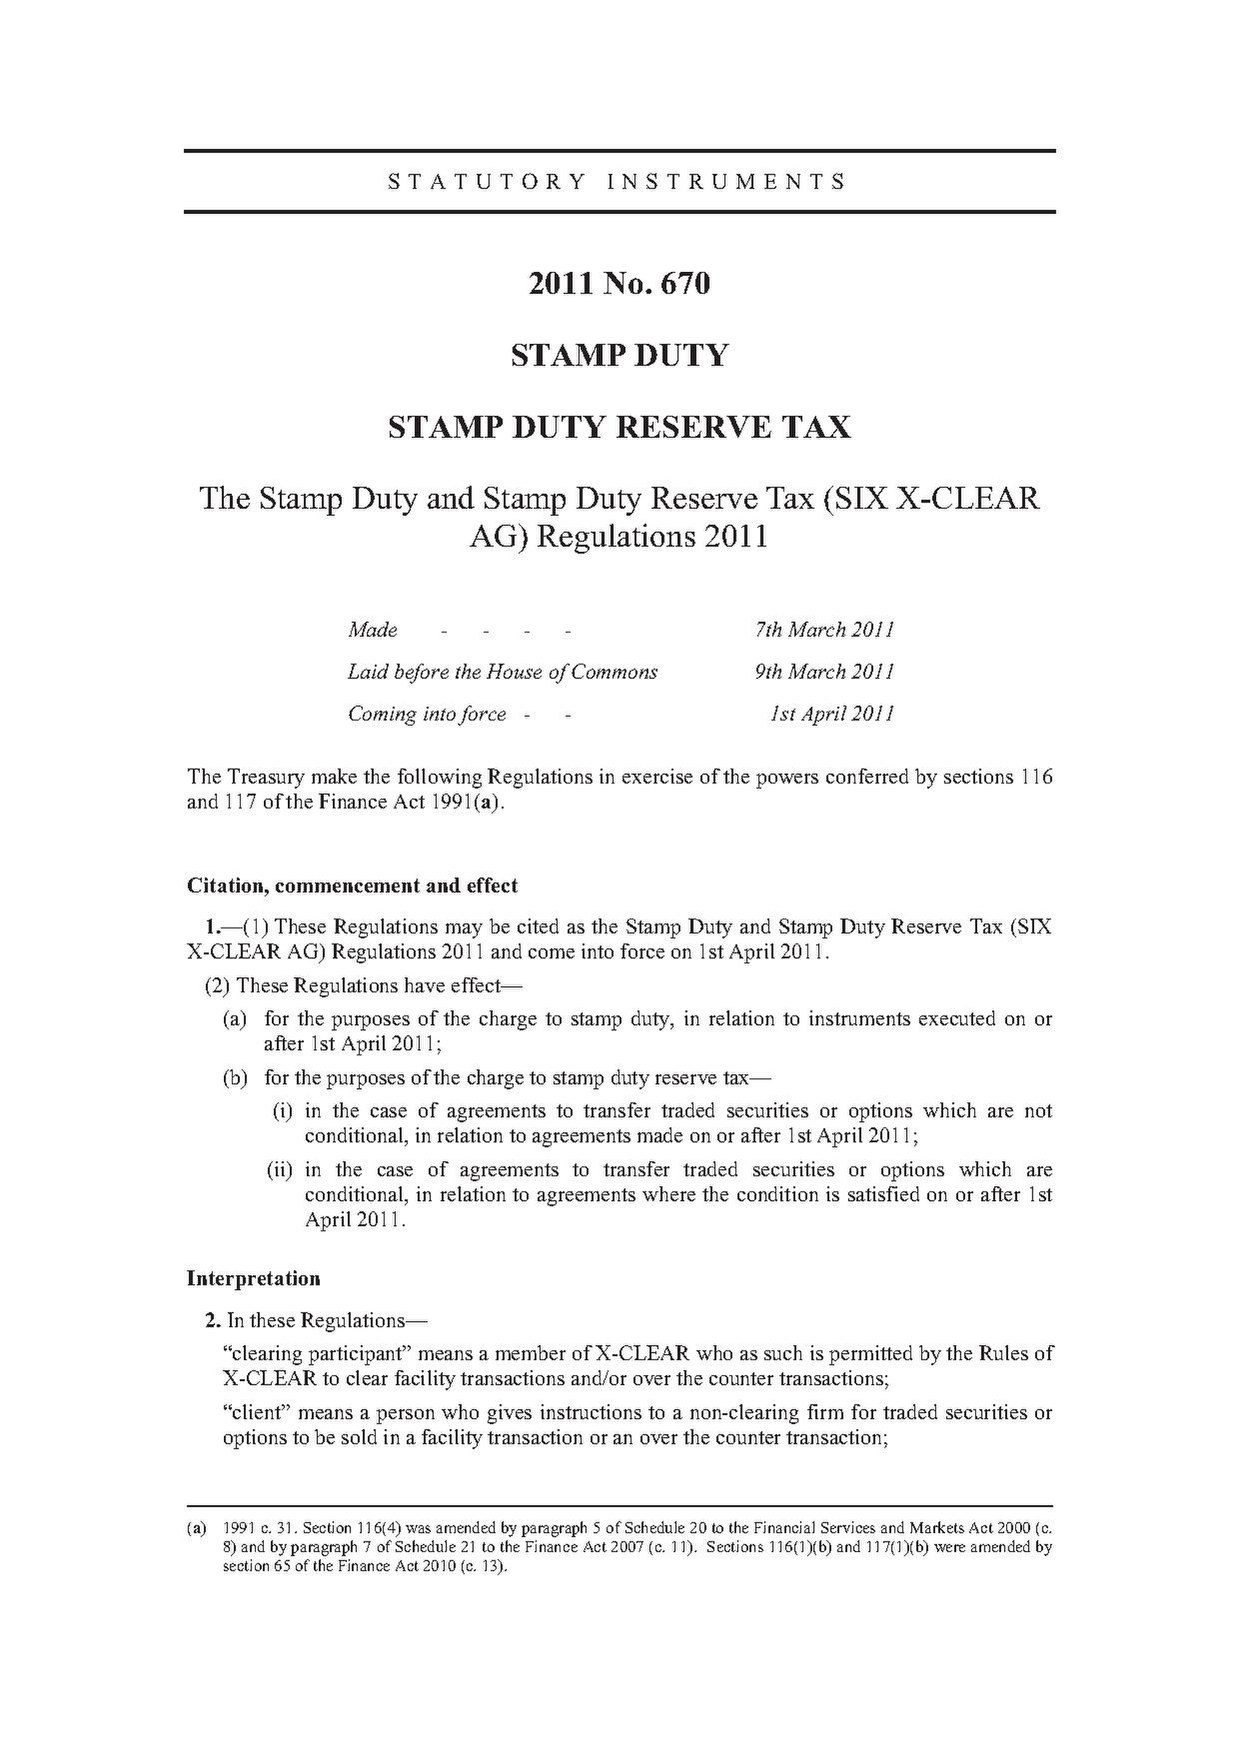 File:The Stamp Duty and Stamp Duty Reserve Tax (SIX X-CLEAR AG ...